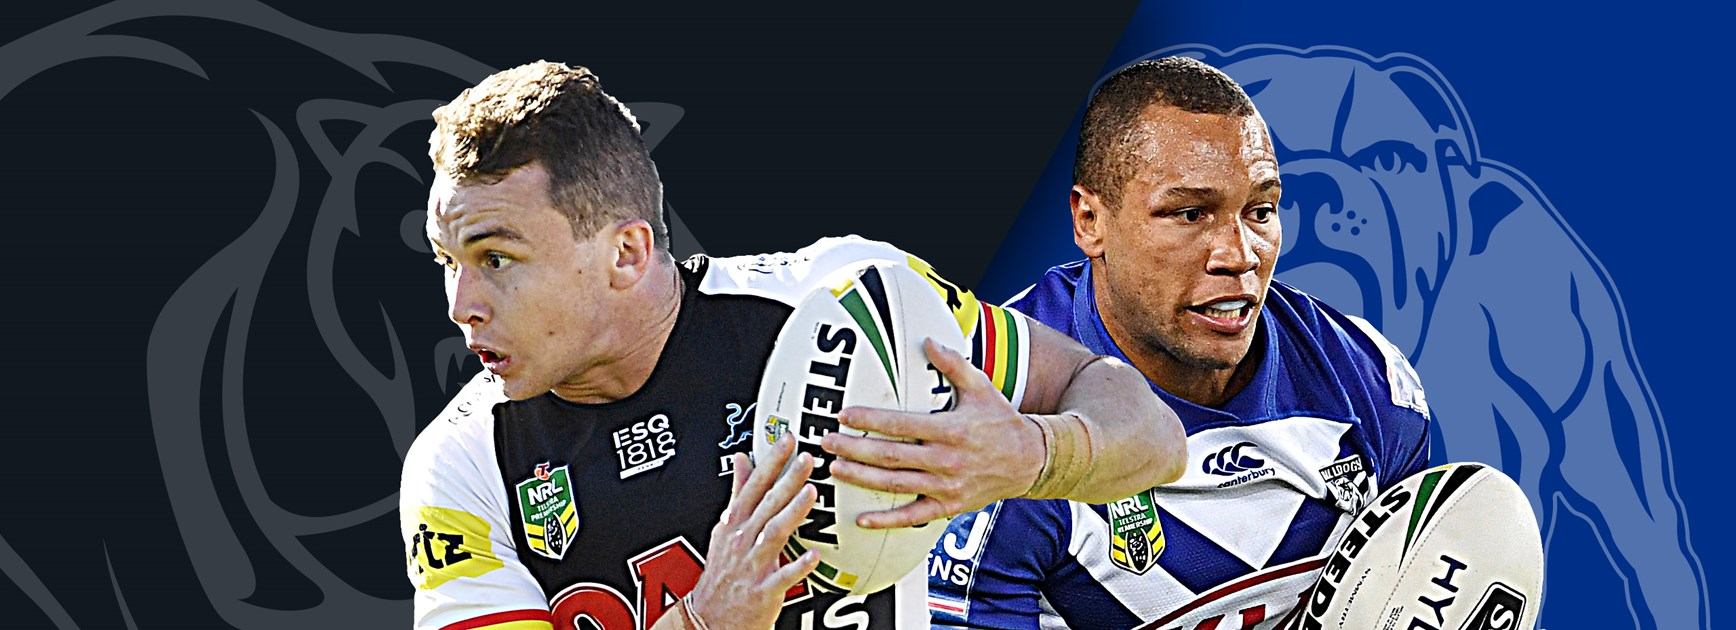 Panthers v Bulldogs: Both sides out to bounce back